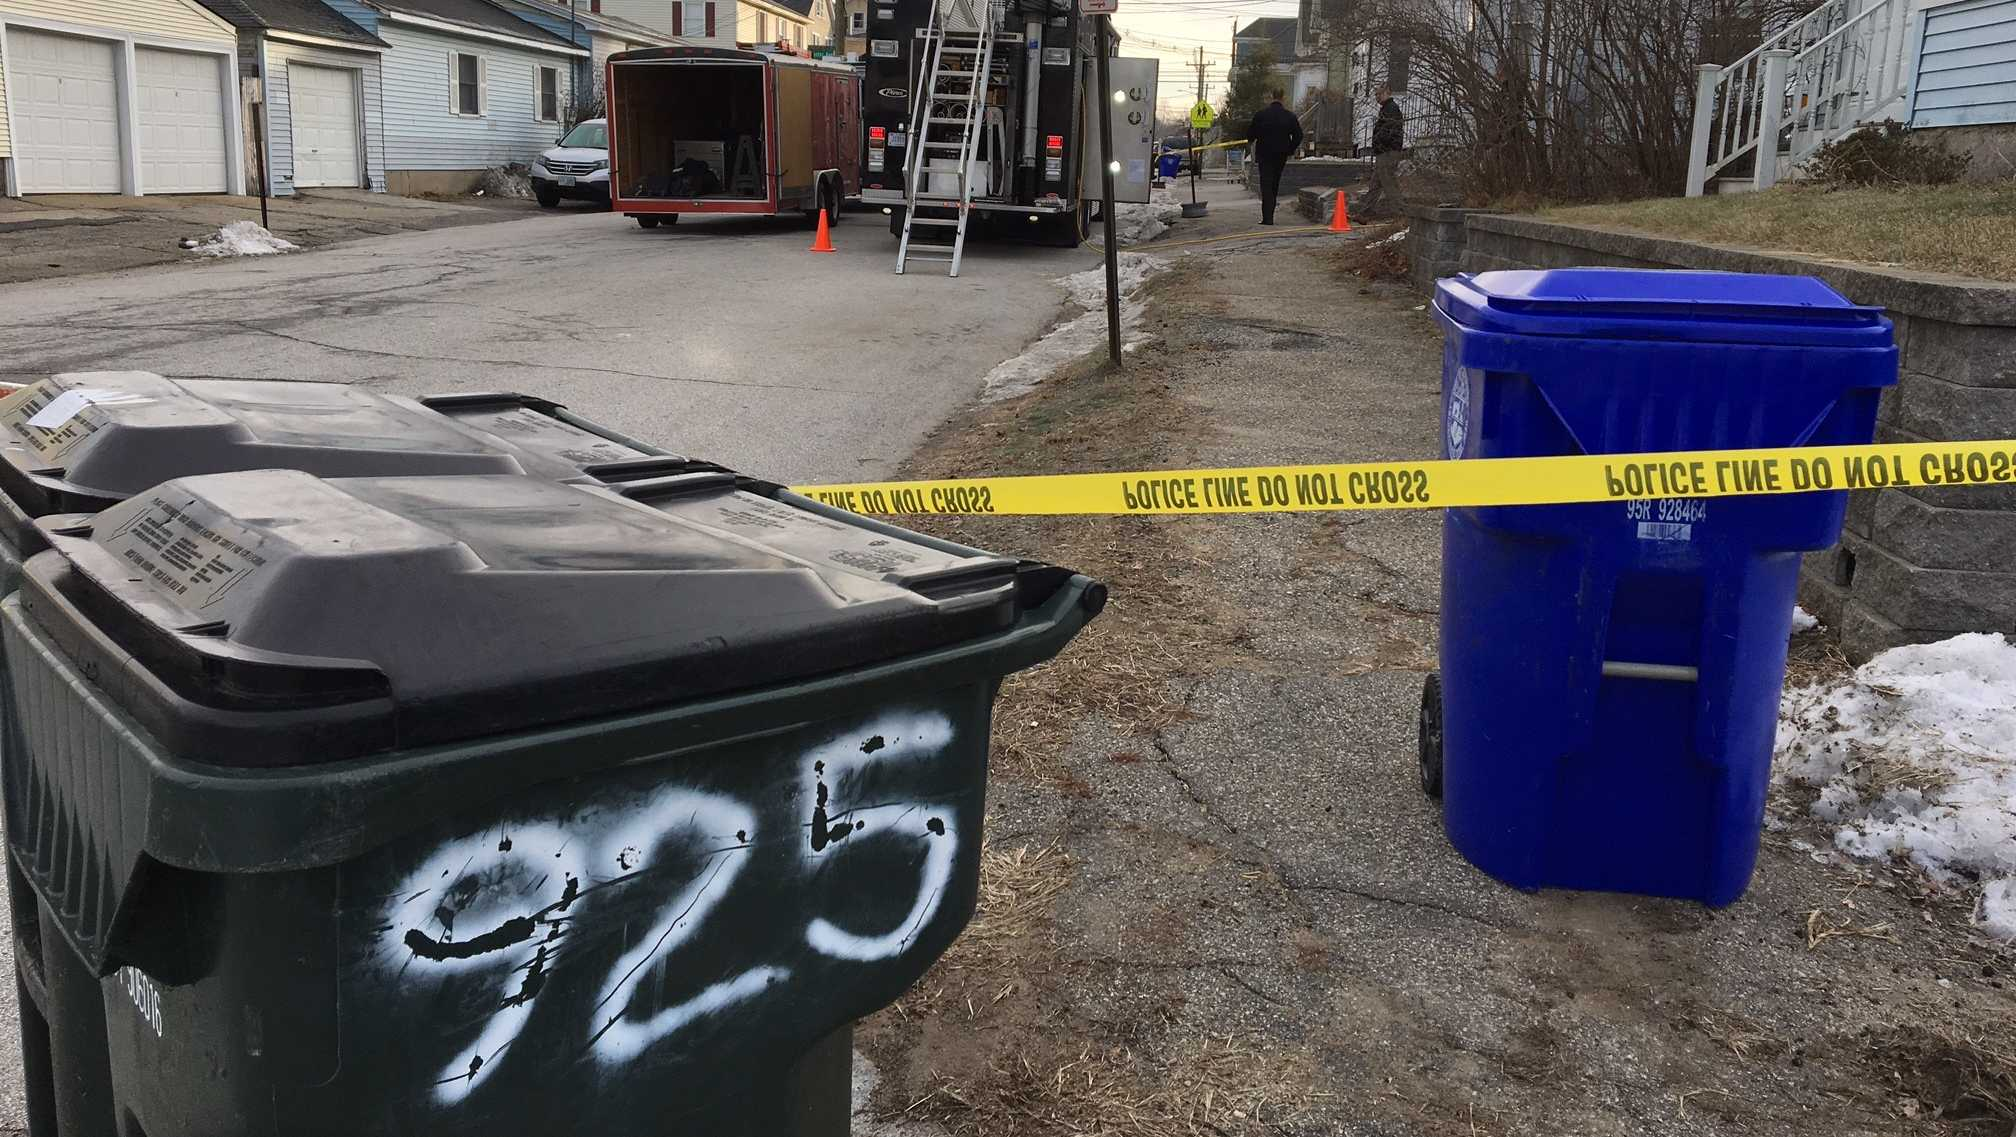 Investigators search former home of missing Manchester woman